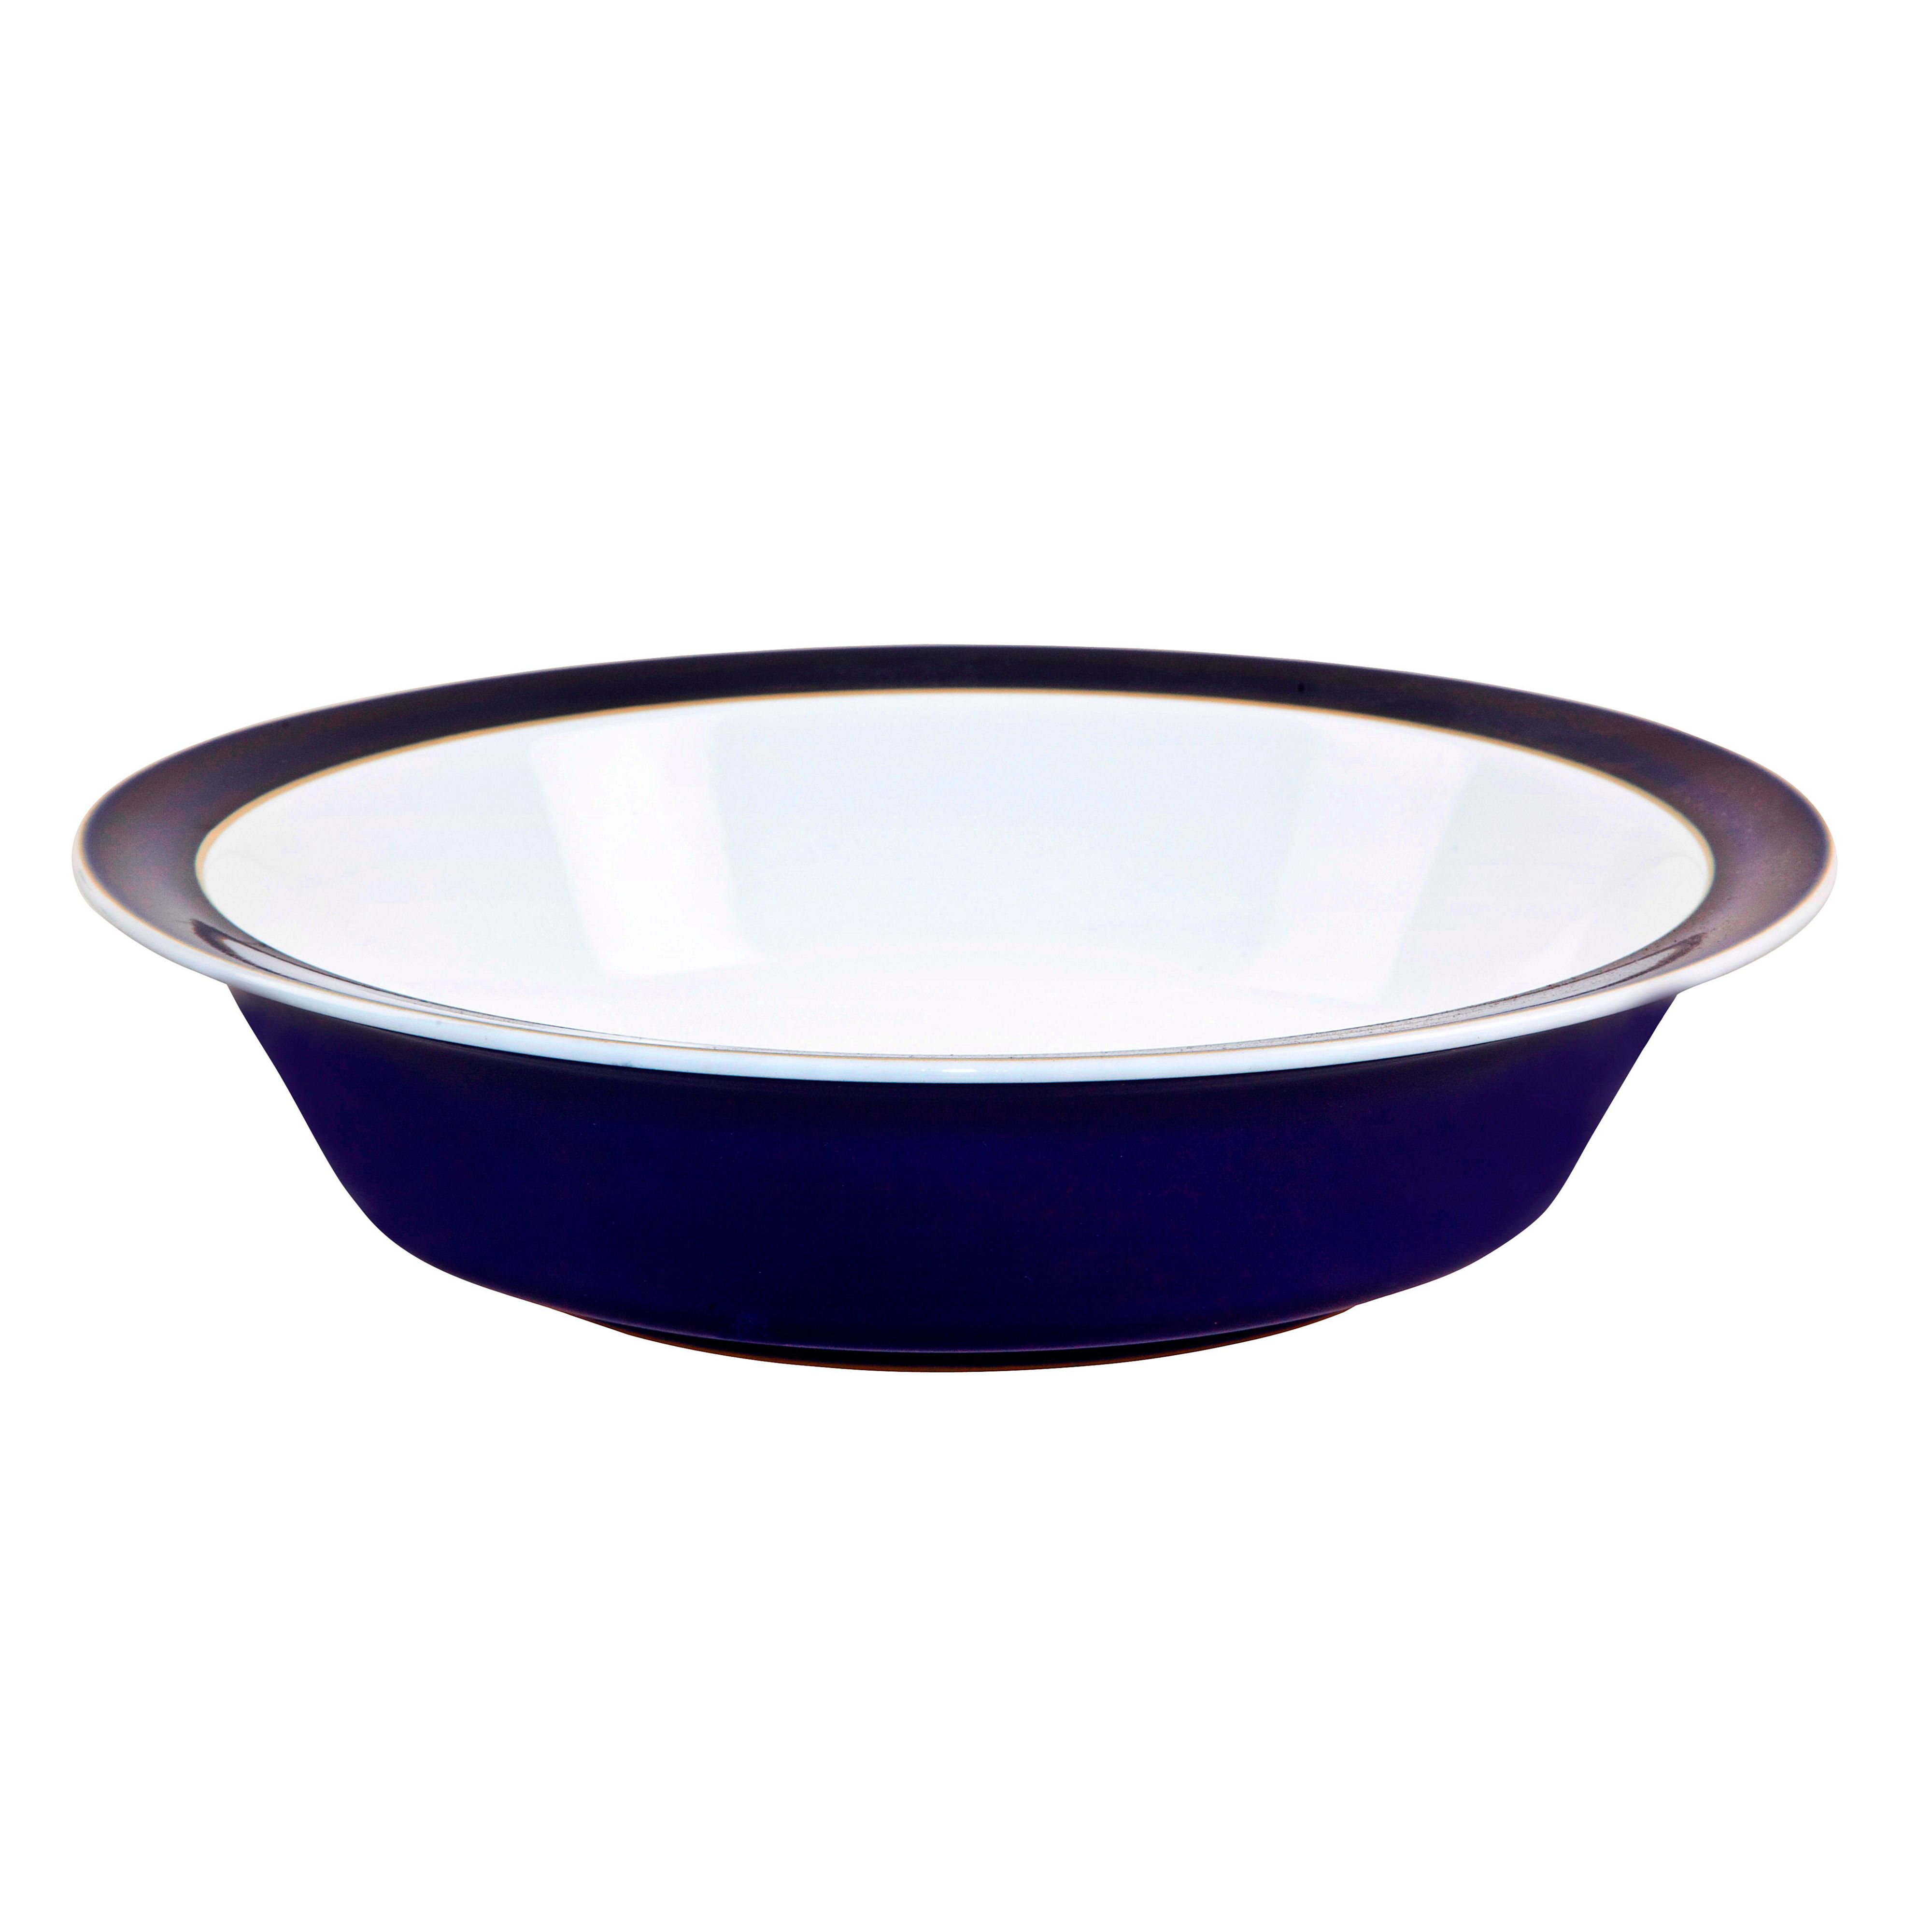 Malmo serving bowl